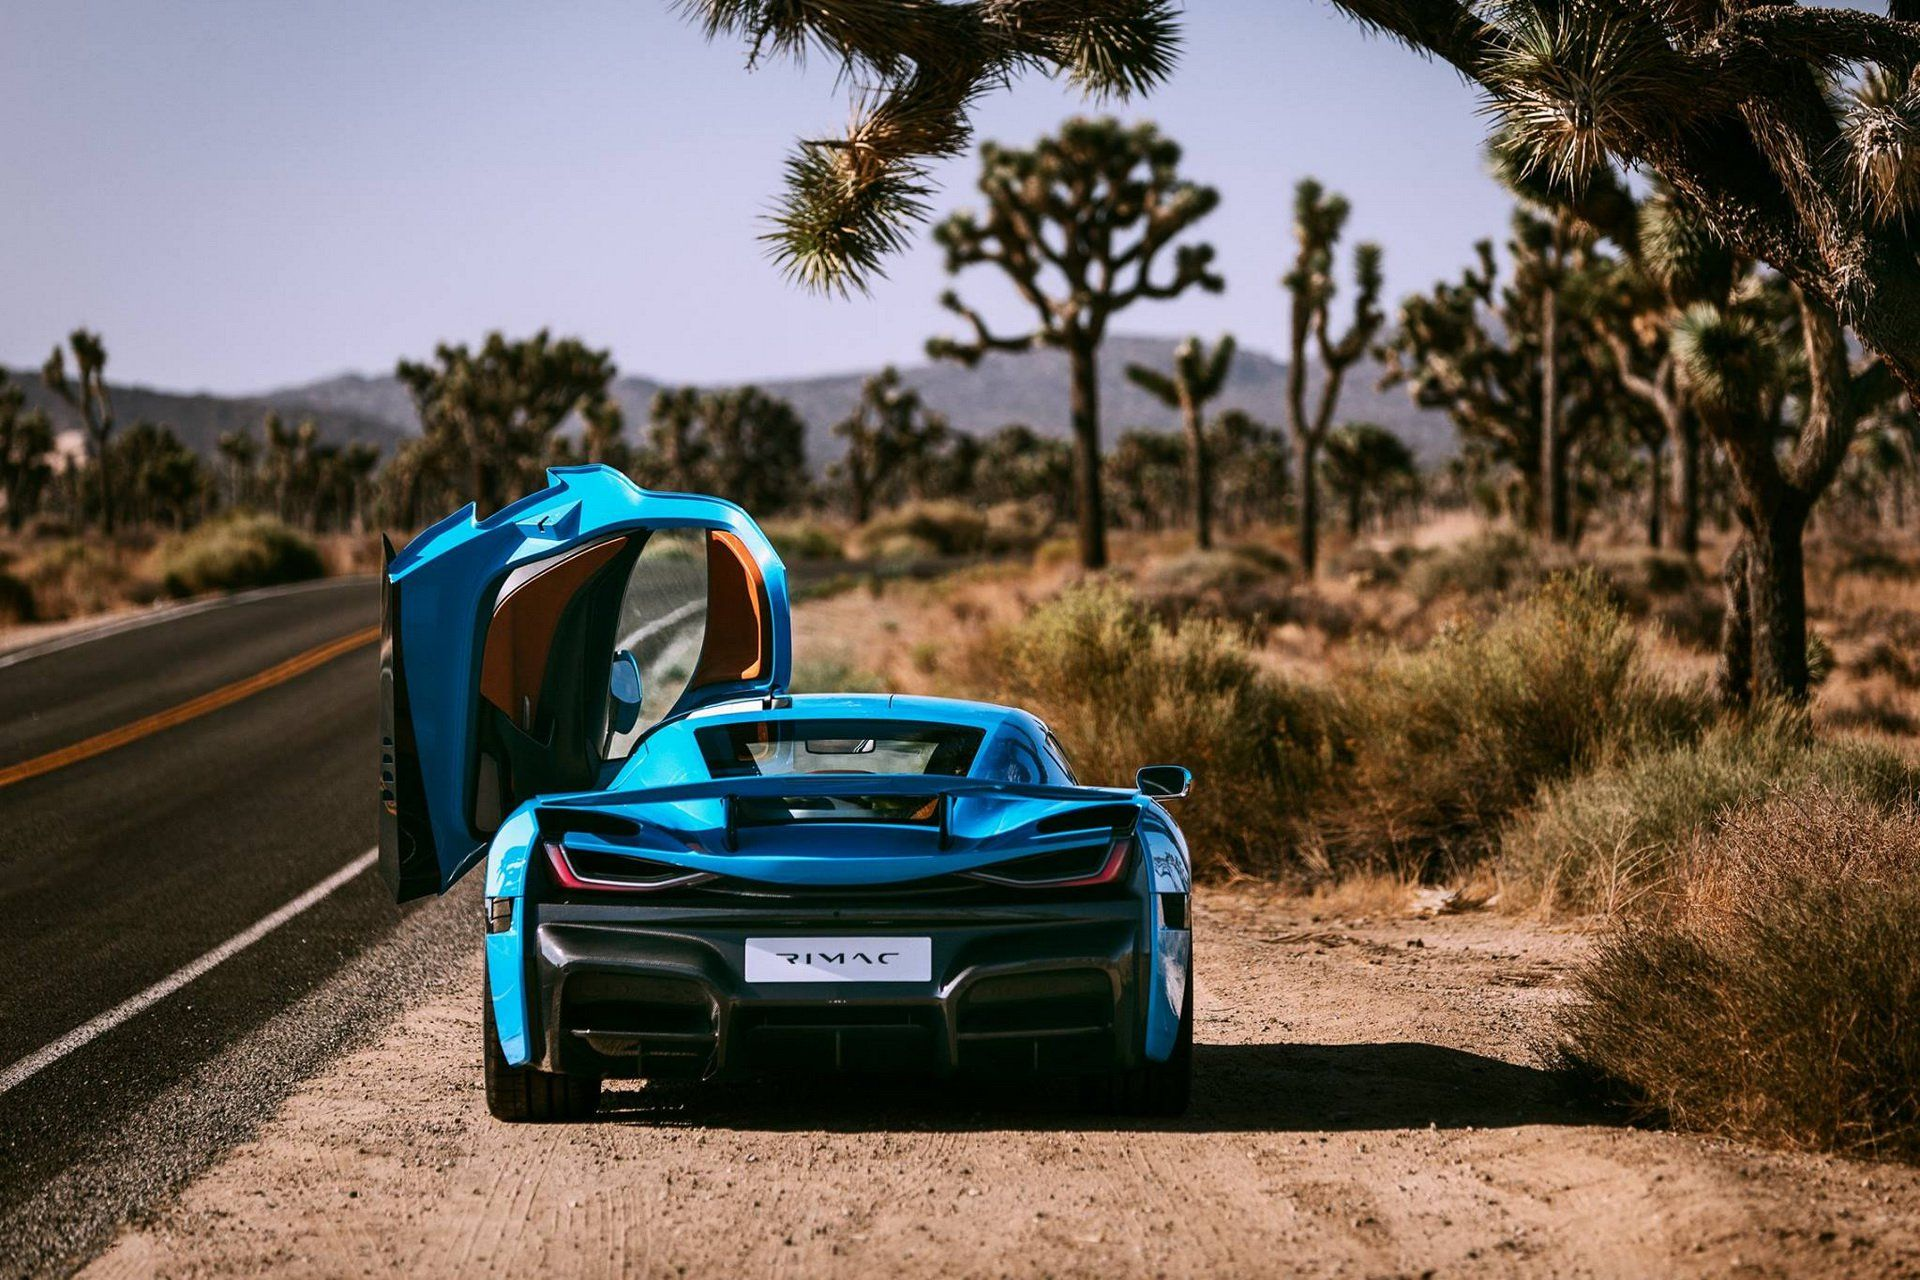 Rimac S 1 888 Hp C Two Electric Hypercar Gets New Paintjob Two Champagne Bottles And Flutes Carscoops Car Wallpapers Automotive Super Cars